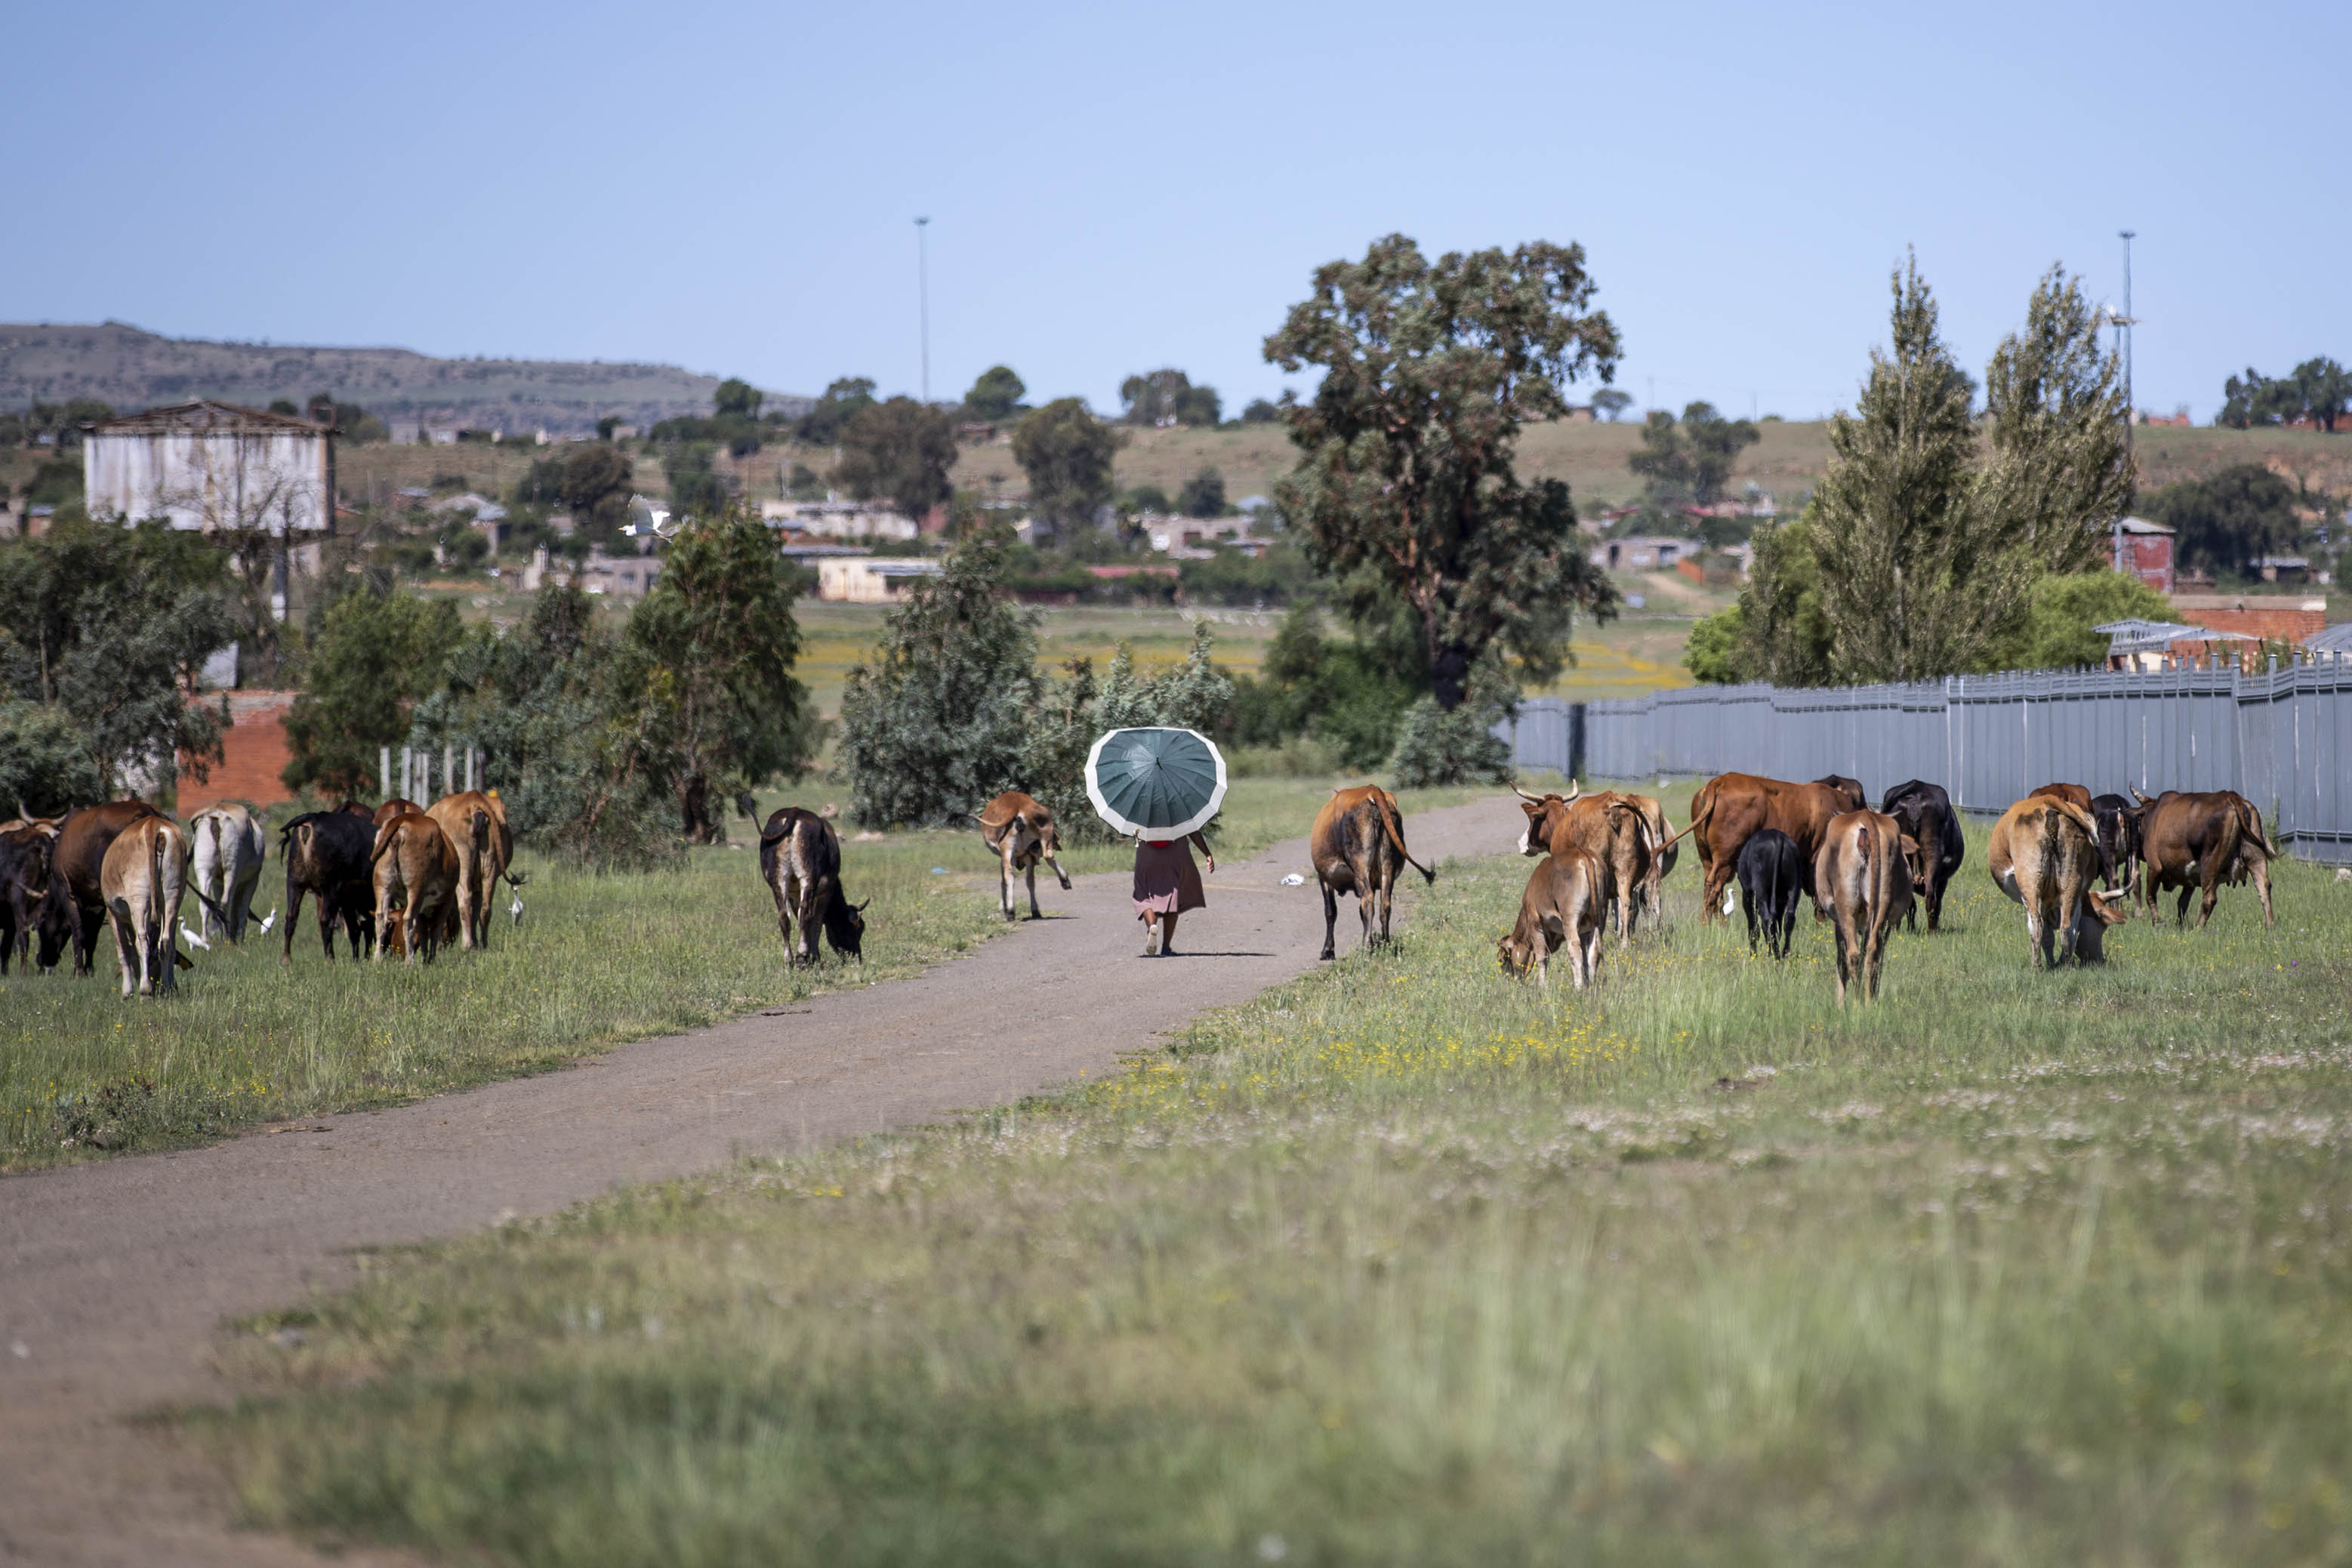 28 February 2019: A woman walks among cattle grazing close to Thubisi Trust on the outskirts of Thaba Nchu in the Free State.